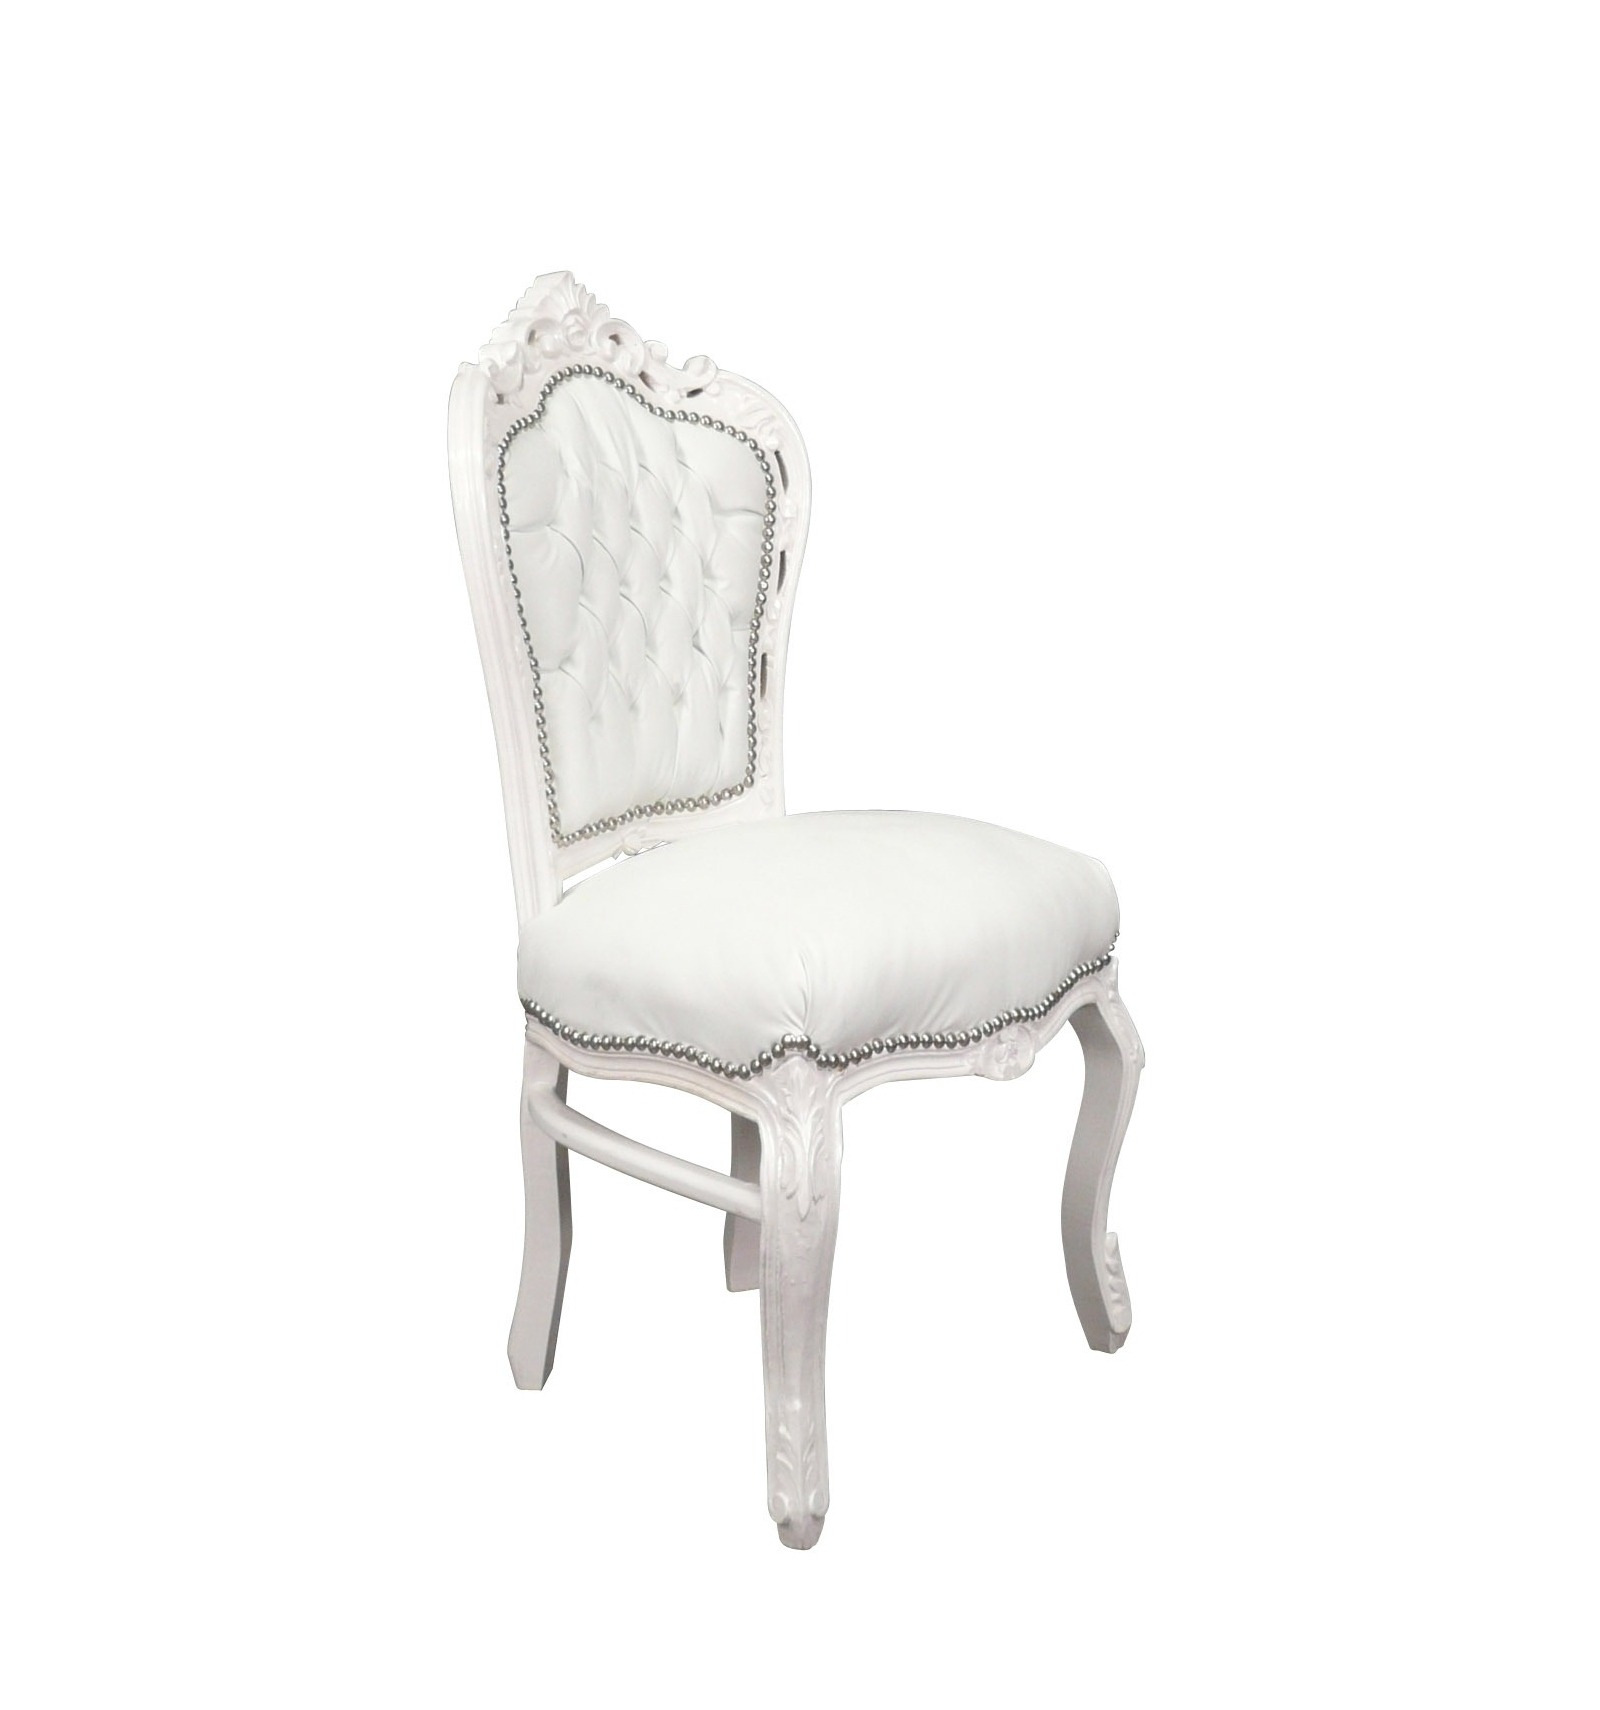 chaise baroque blanche chaise blanche style baroque - Chaise Baroque